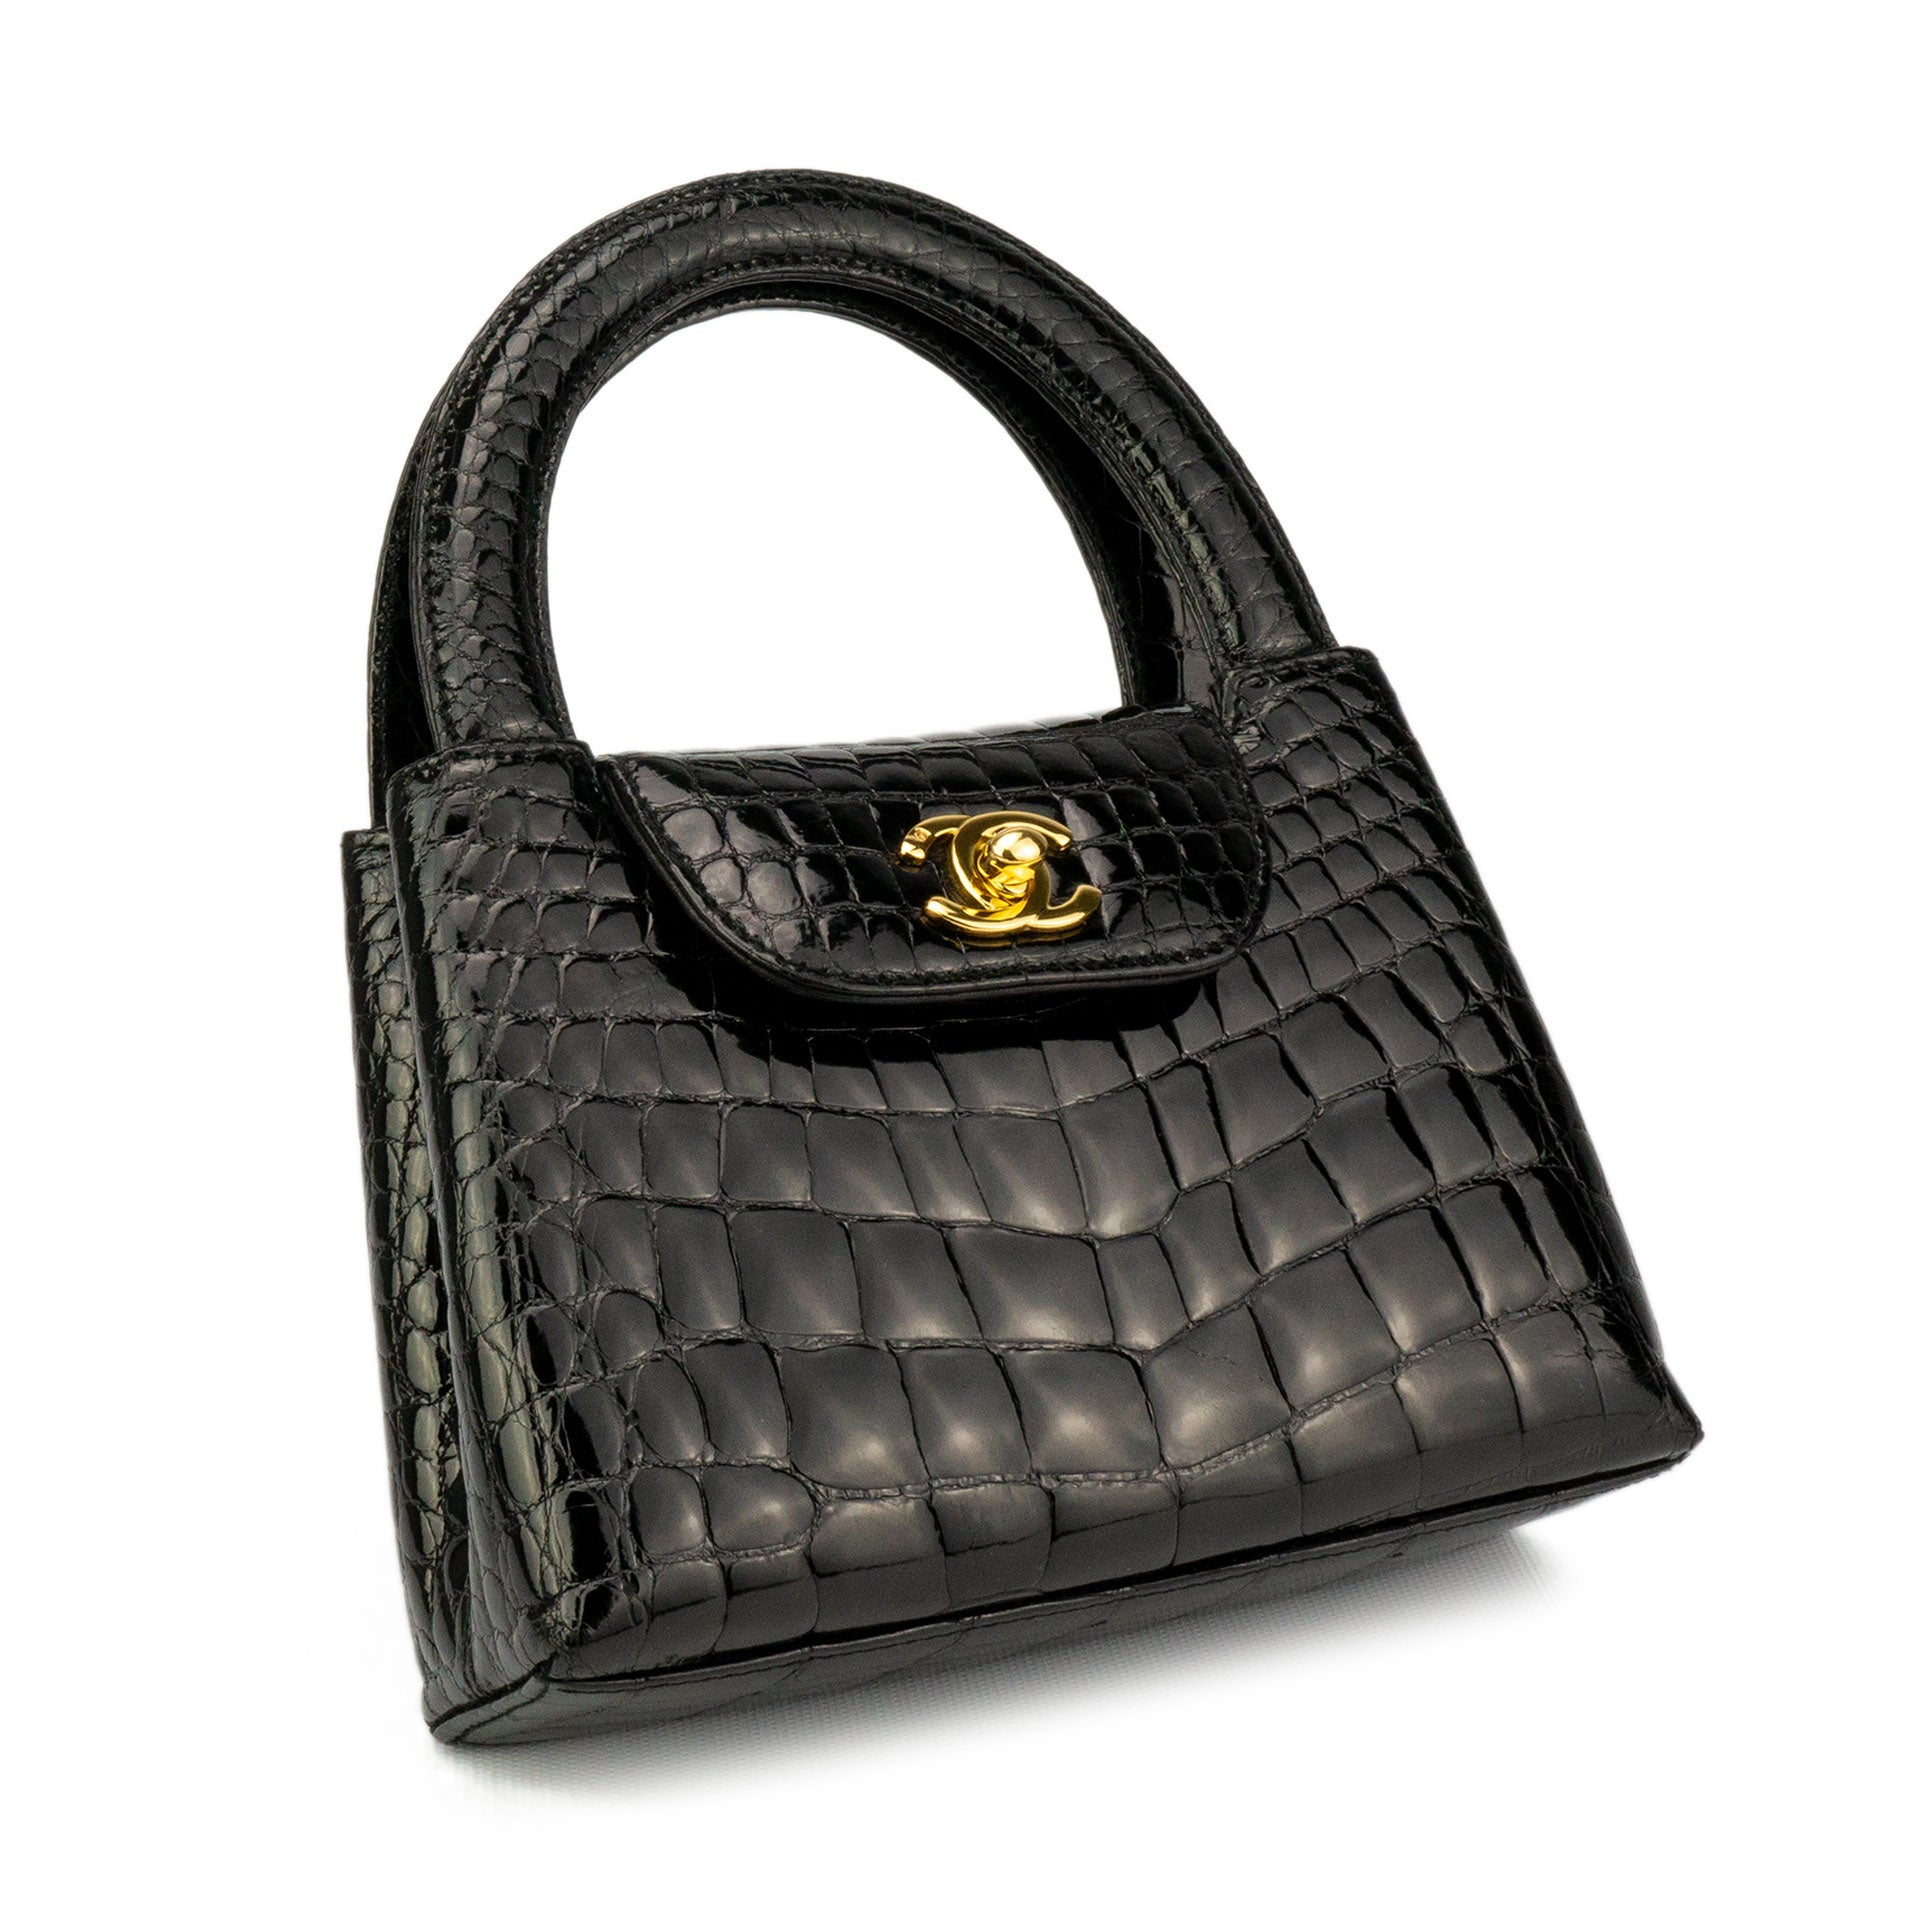 ff100685e99e Chanel Black Crocodile Vintage Mini Teeny Tiny Kelly Clutch Alligator Tote  Bag at 1stdibs